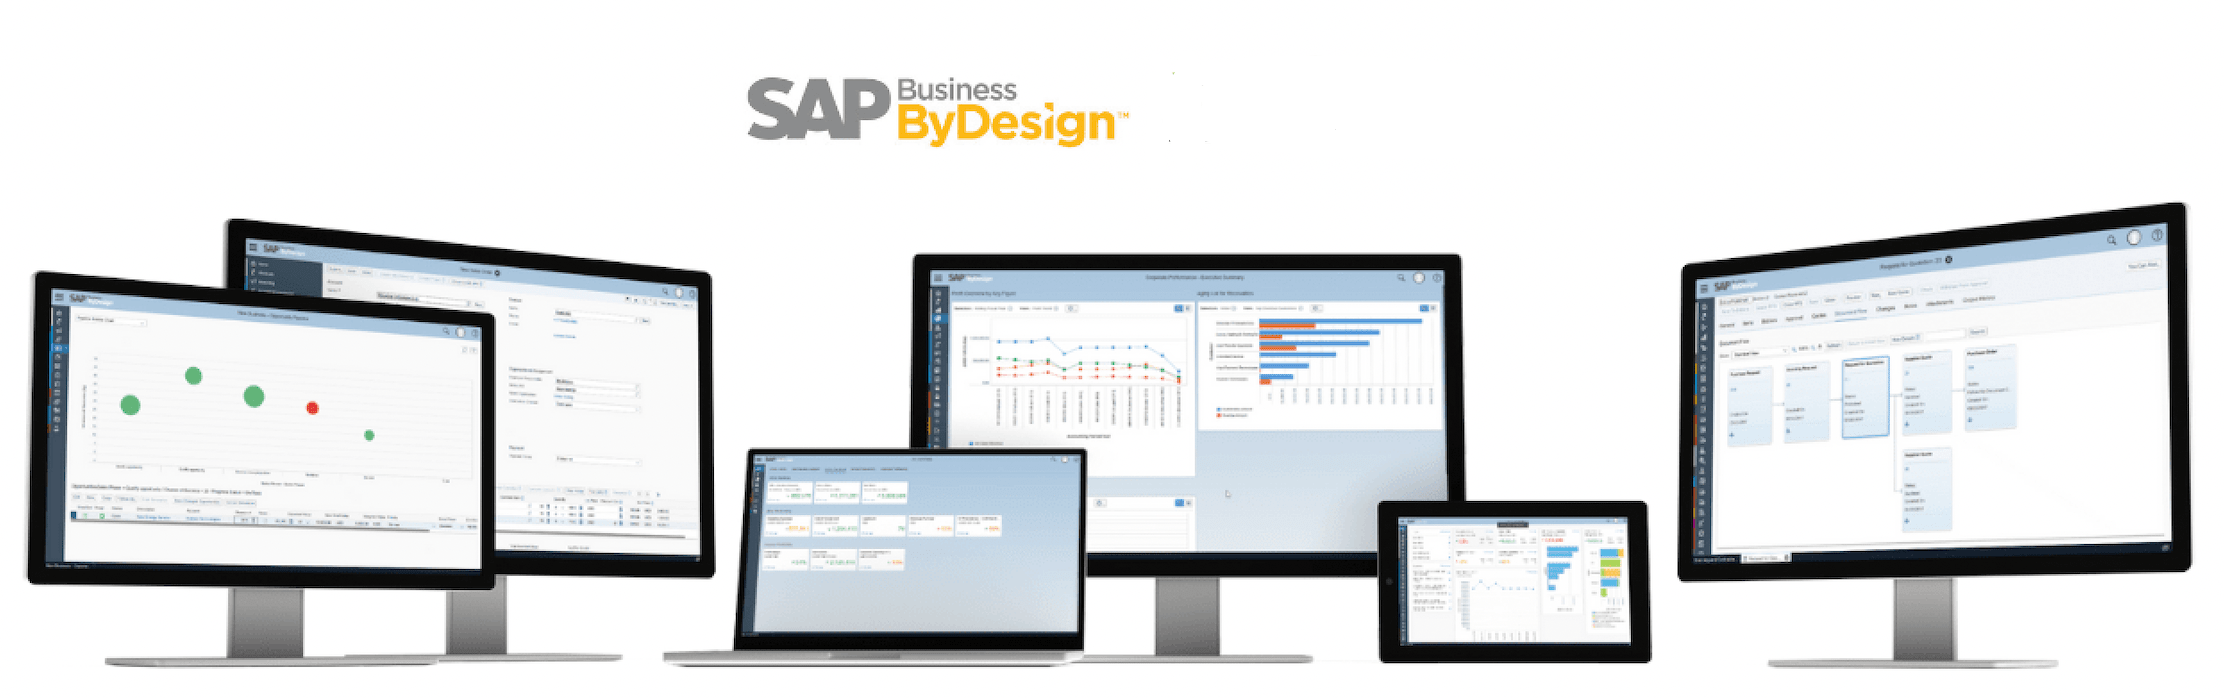 SAP Business ByDesign Sileron